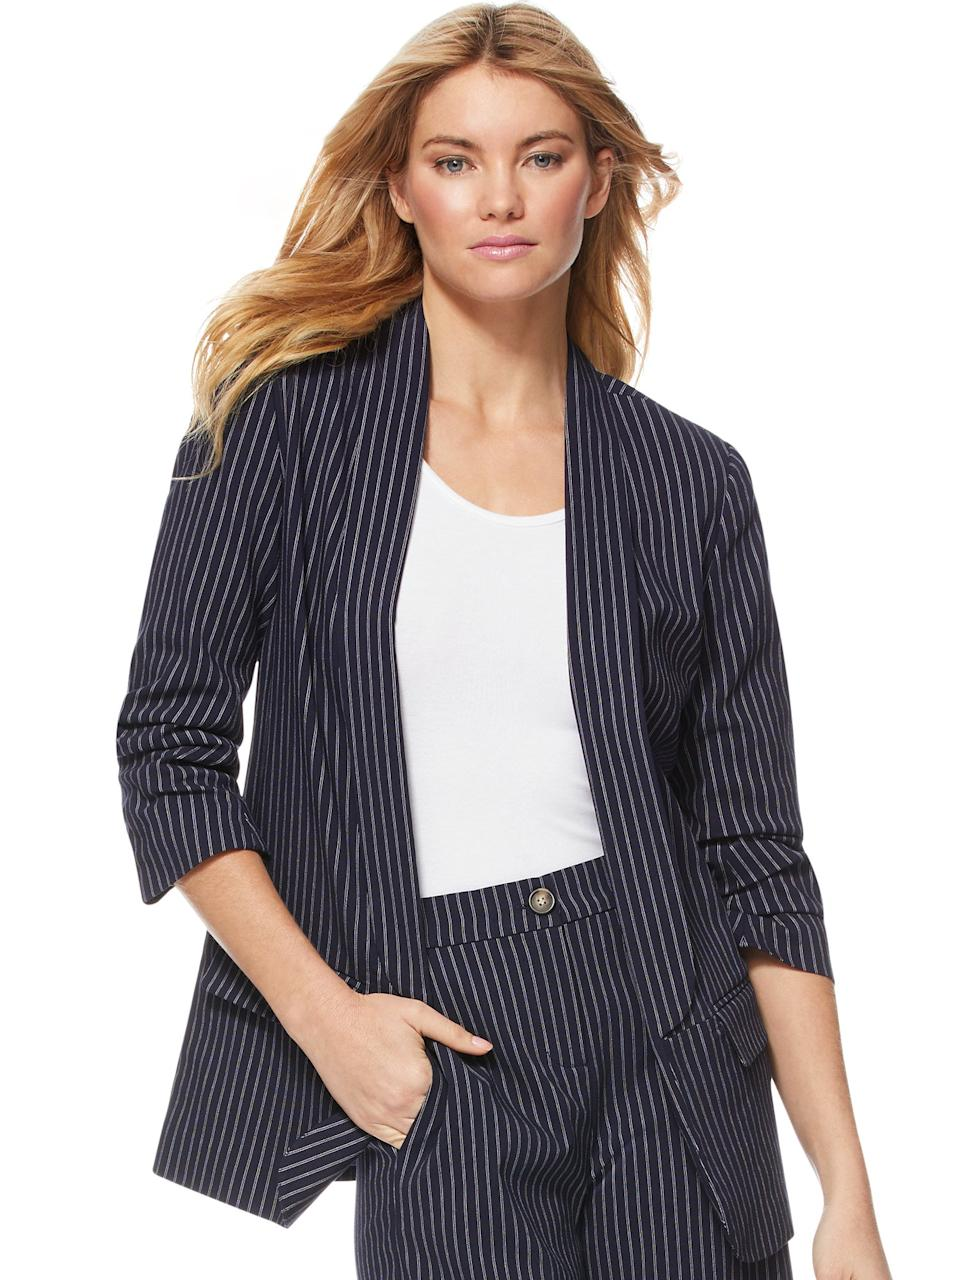 "<br><br><strong>Scoop</strong> Scrunch Sleeve Blazer, $, available at <a href=""https://go.skimresources.com/?id=30283X879131&url=https%3A%2F%2Fwww.walmart.com%2Fip%2FScoop-Scrunch-Sleeve-Shawl-Collar-Blazer-Women-s%2F584216963"" rel=""nofollow noopener"" target=""_blank"" data-ylk=""slk:Walmart"" class=""link rapid-noclick-resp"">Walmart</a>"